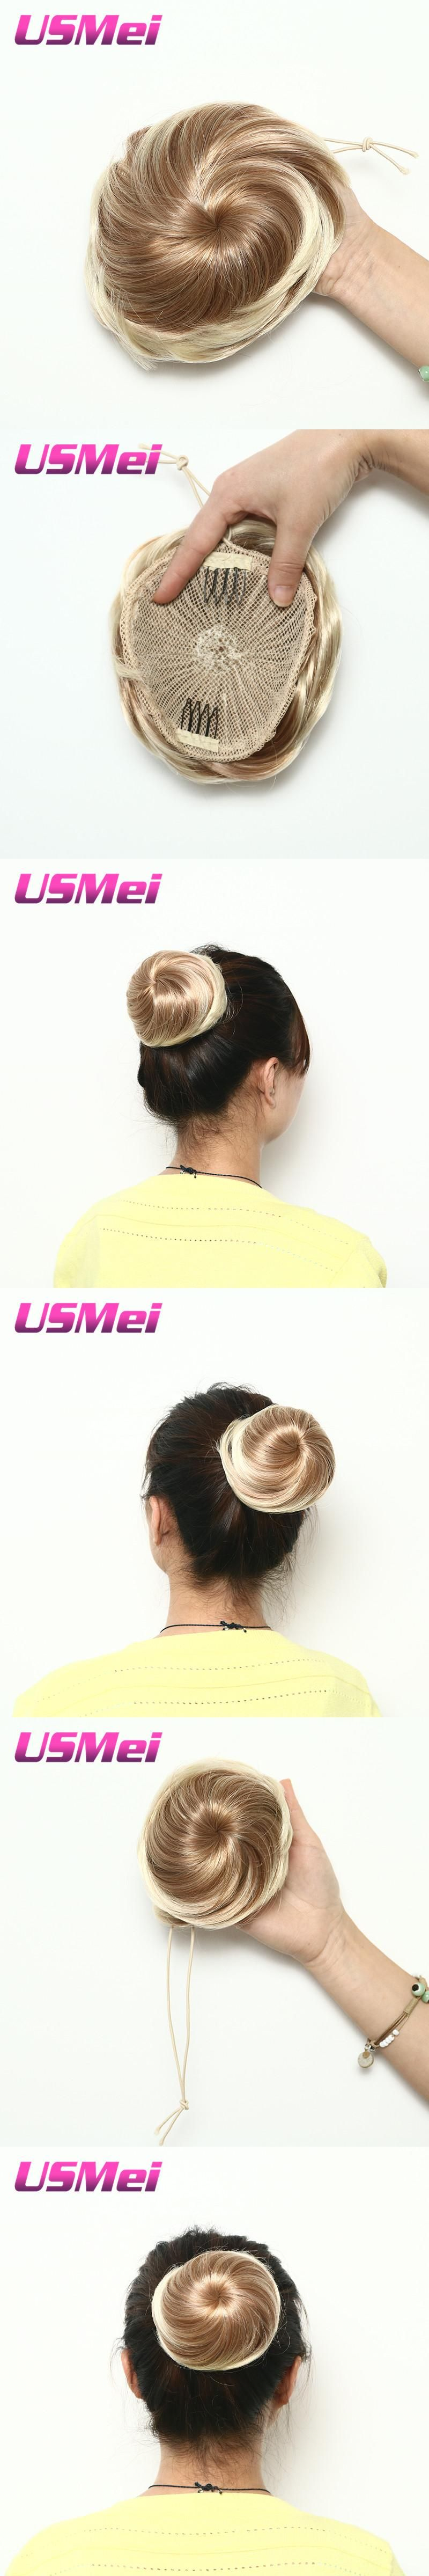 Usmei Womens Elastic Net Curly Chignon With Two Plastic Combs Updo